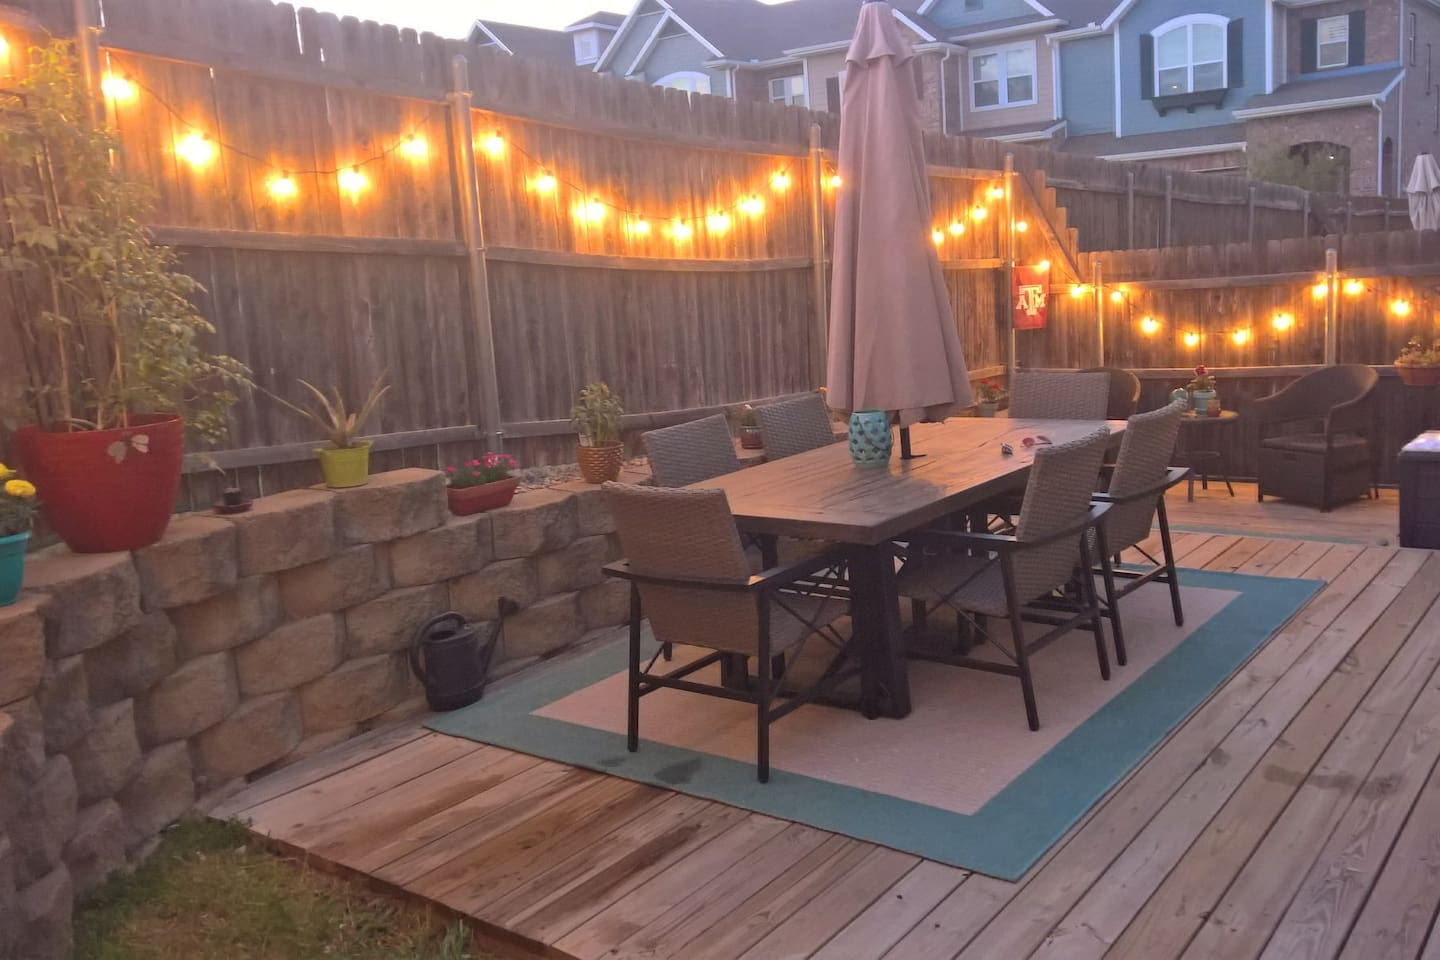 Outdoor patio with grill, perfect for relaxation or entertainment.